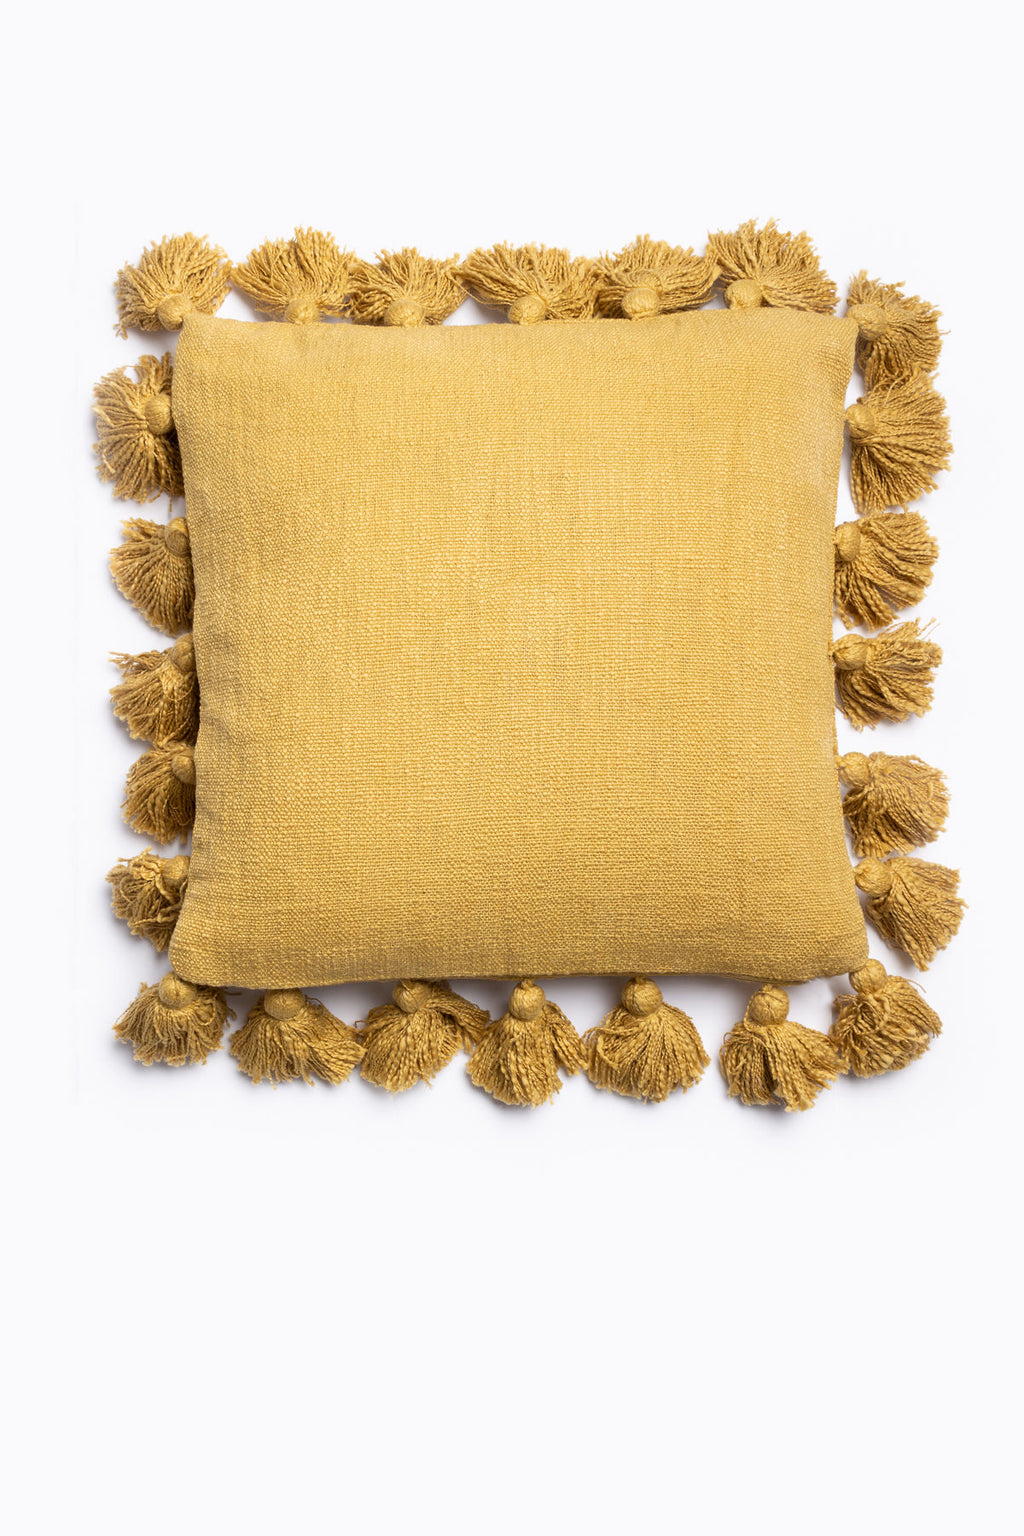 HOME: Square Pillow w/ Tassels in Mustard